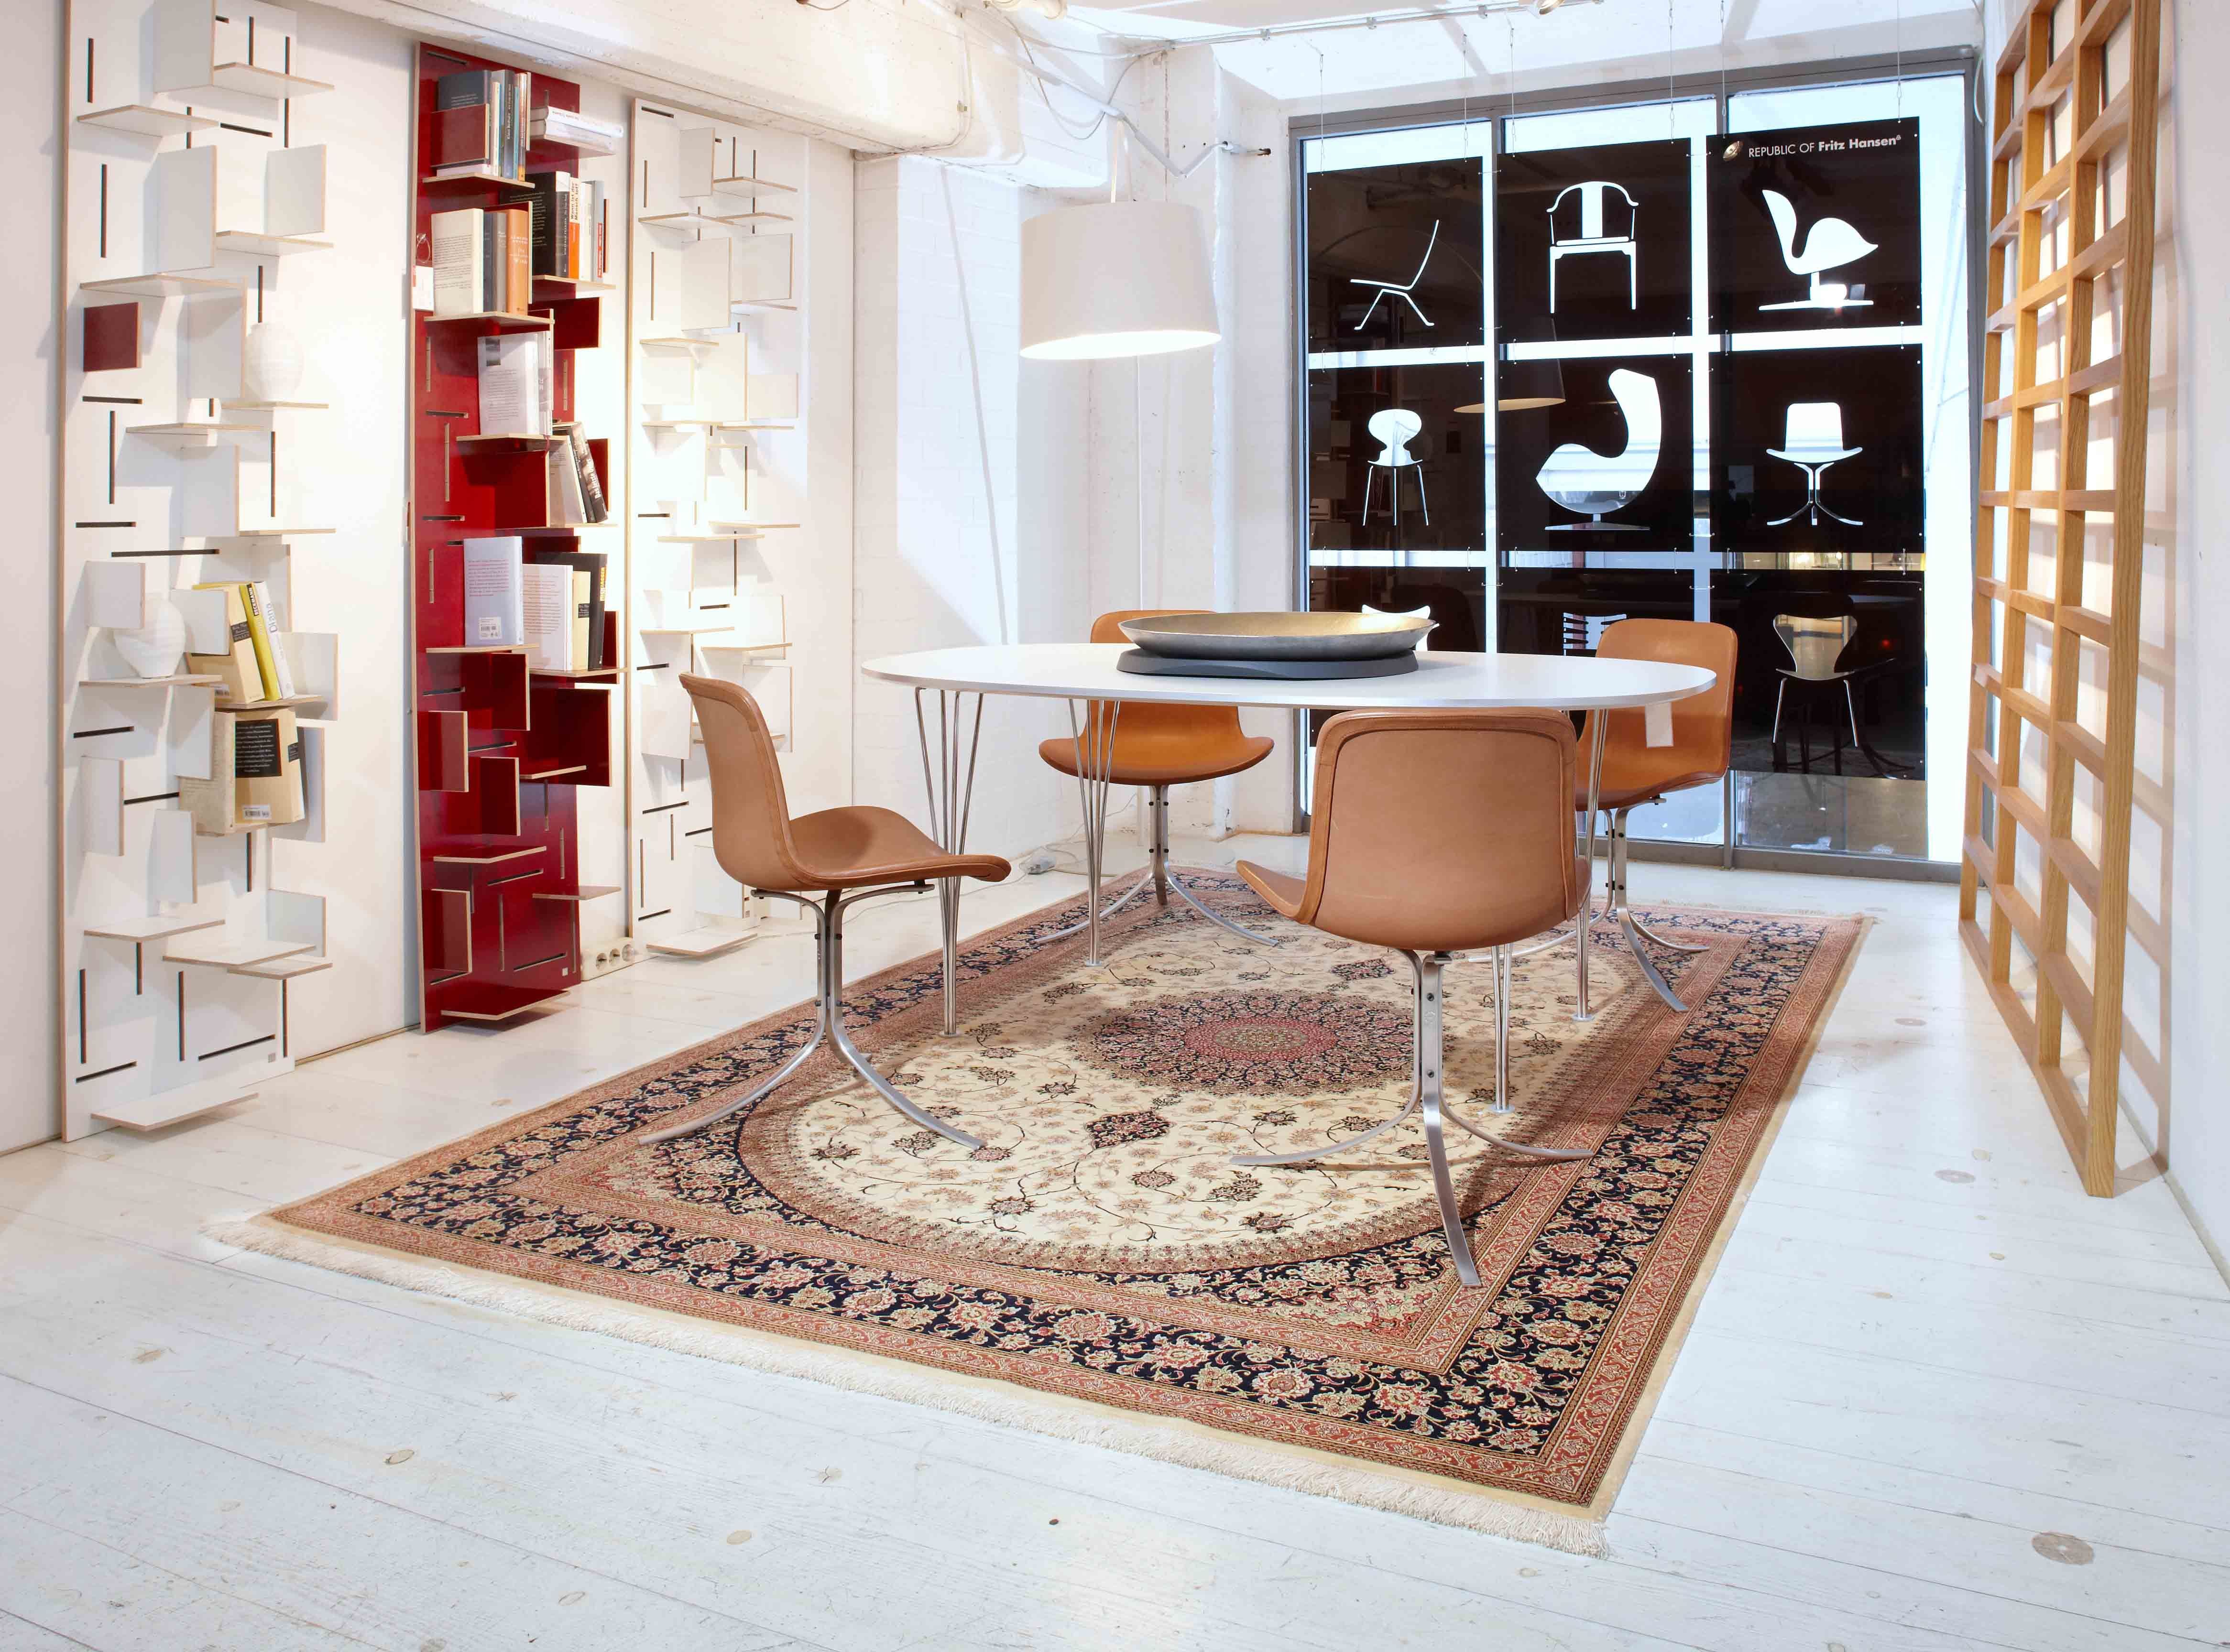 Modern Furniture With Persian Rug 8 best inspiration images on pinterest | modern furniture, carpets